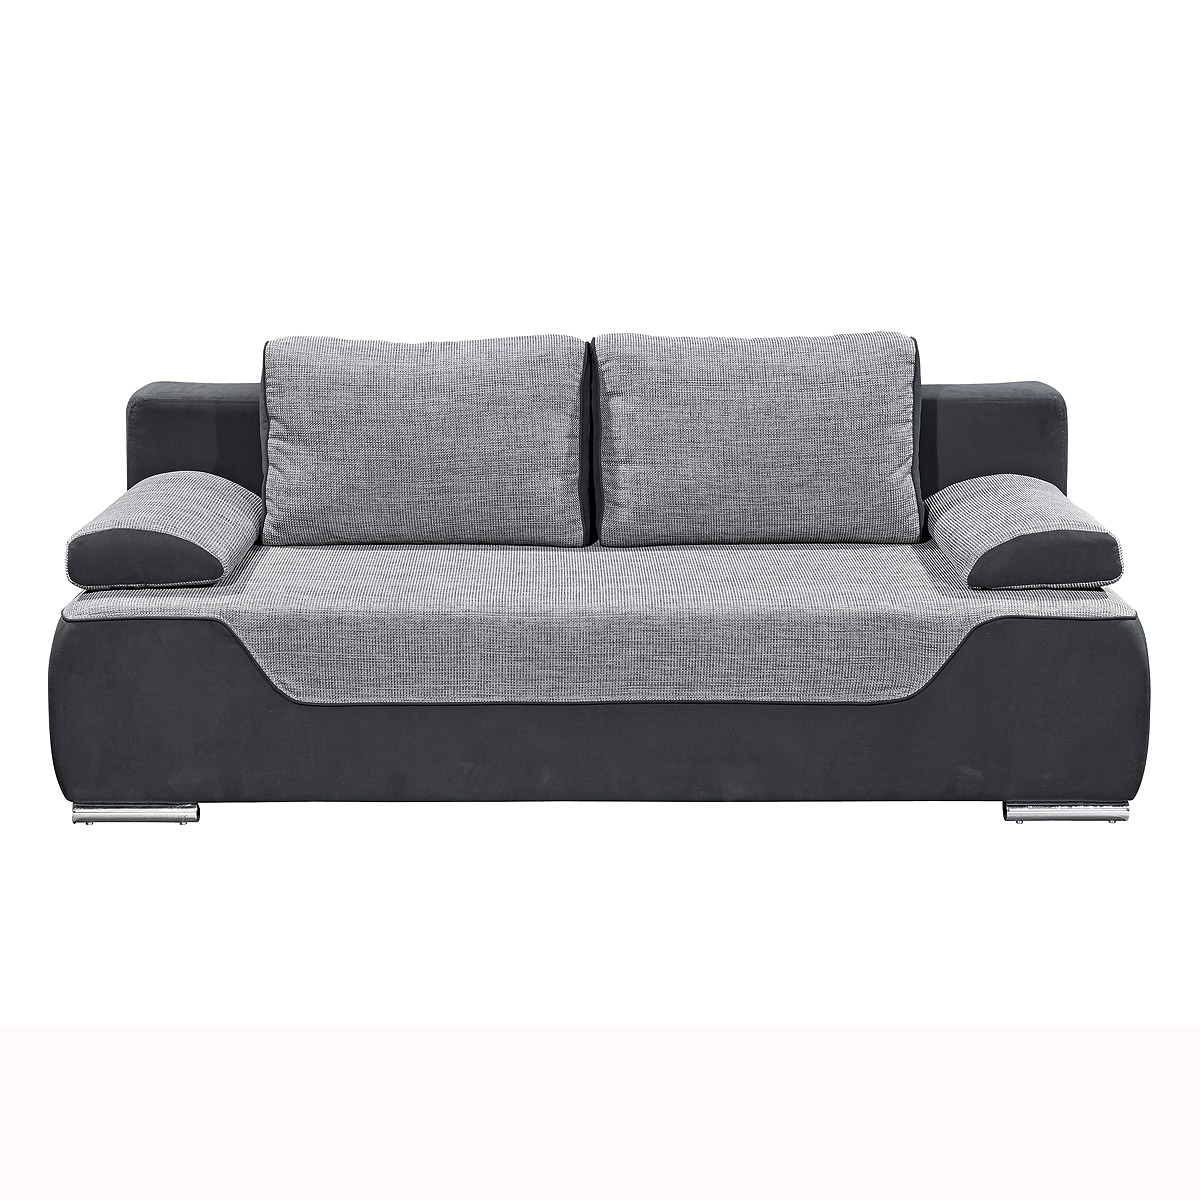 funktionssofa cleo schlafsofa sofa stoff schwarz grau ebay. Black Bedroom Furniture Sets. Home Design Ideas